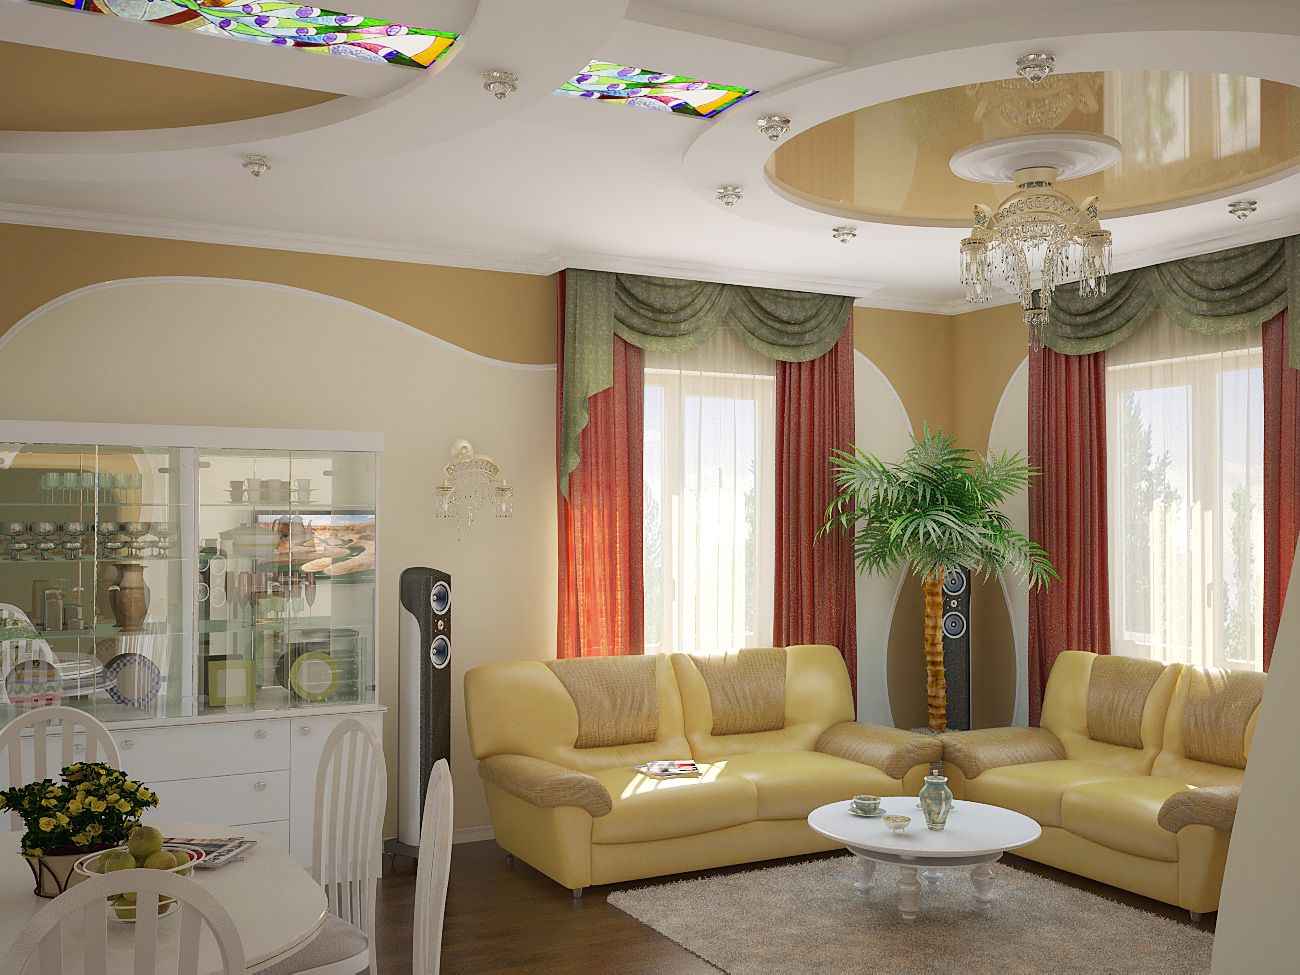 Excellent Sitting Room Ideas With Sofa and Table Plus Chandelier